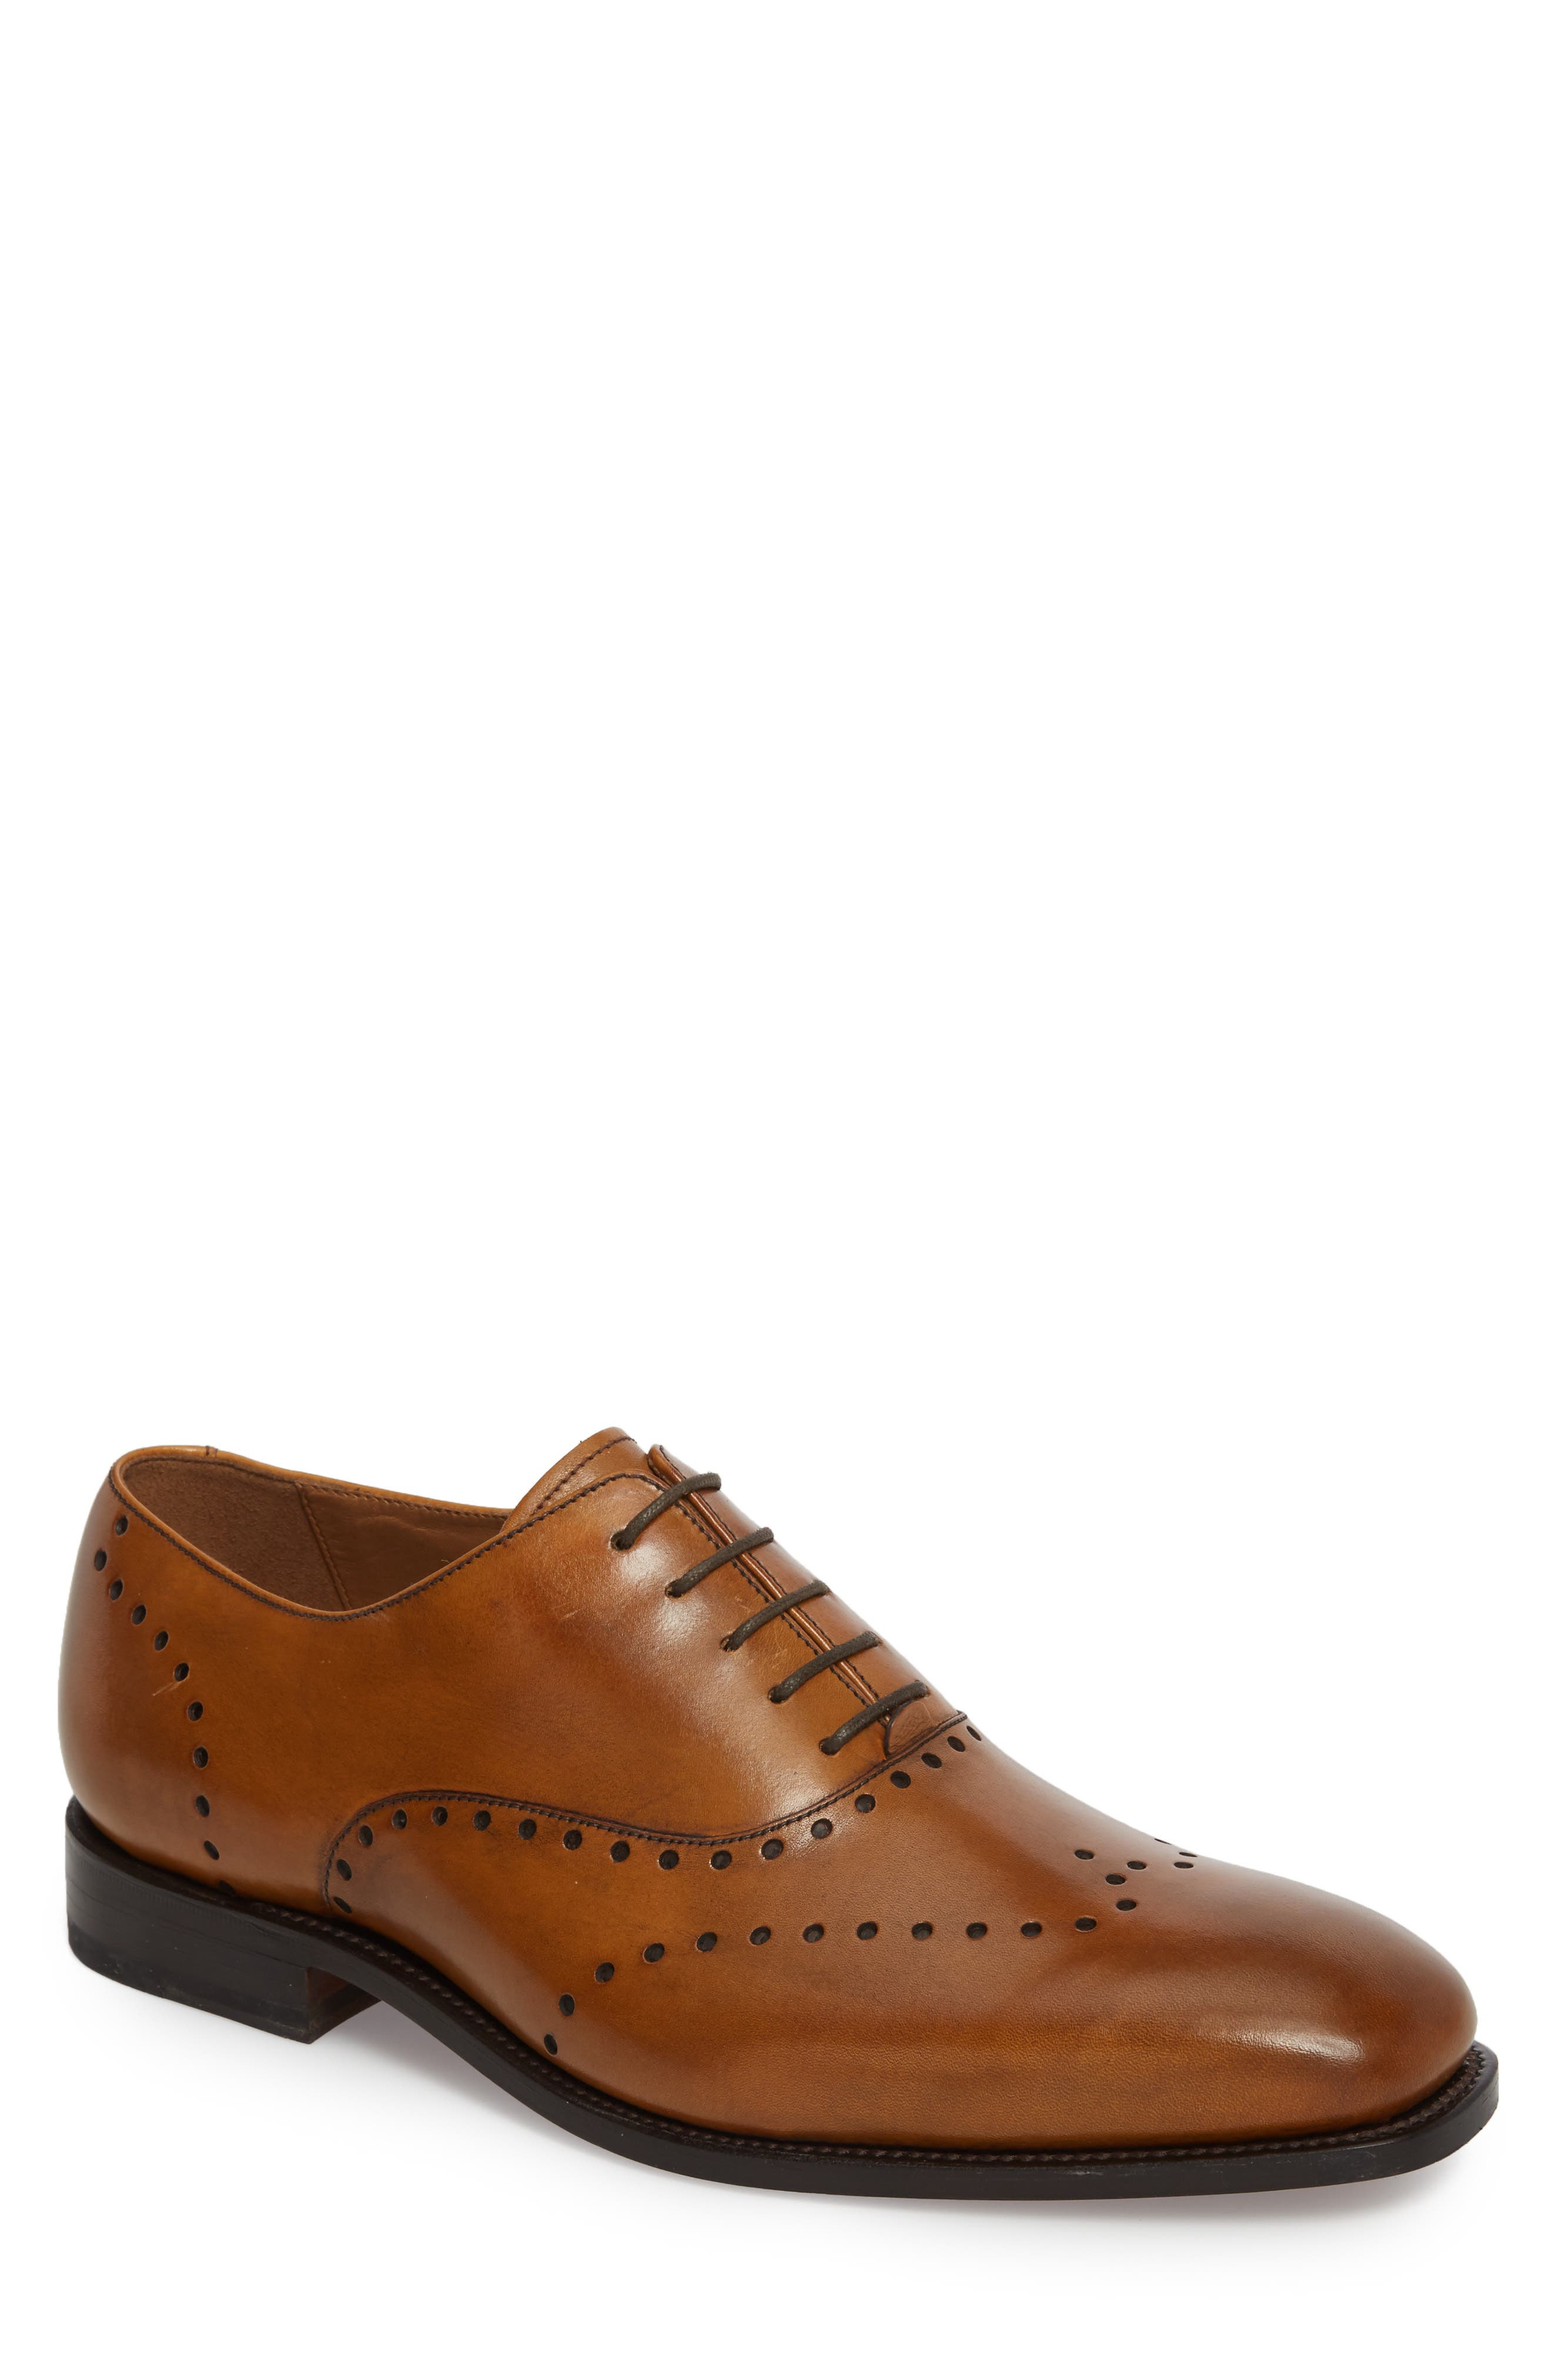 Belvedere Wingtip,                             Main thumbnail 1, color,                             OAK